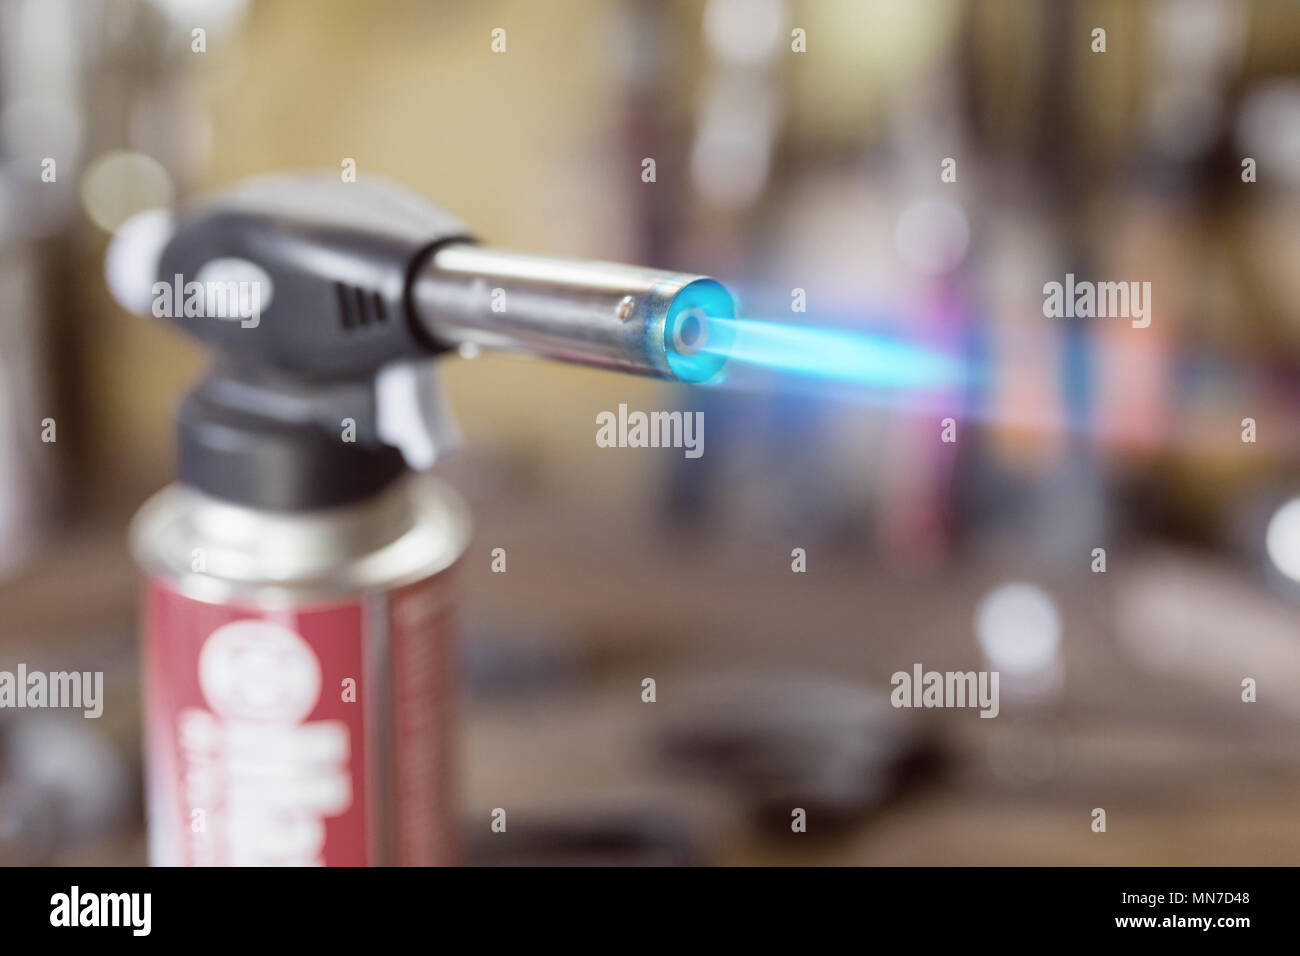 Gas cartridge gun lighter .Close-up nozzle of burner with blue f - Stock Image